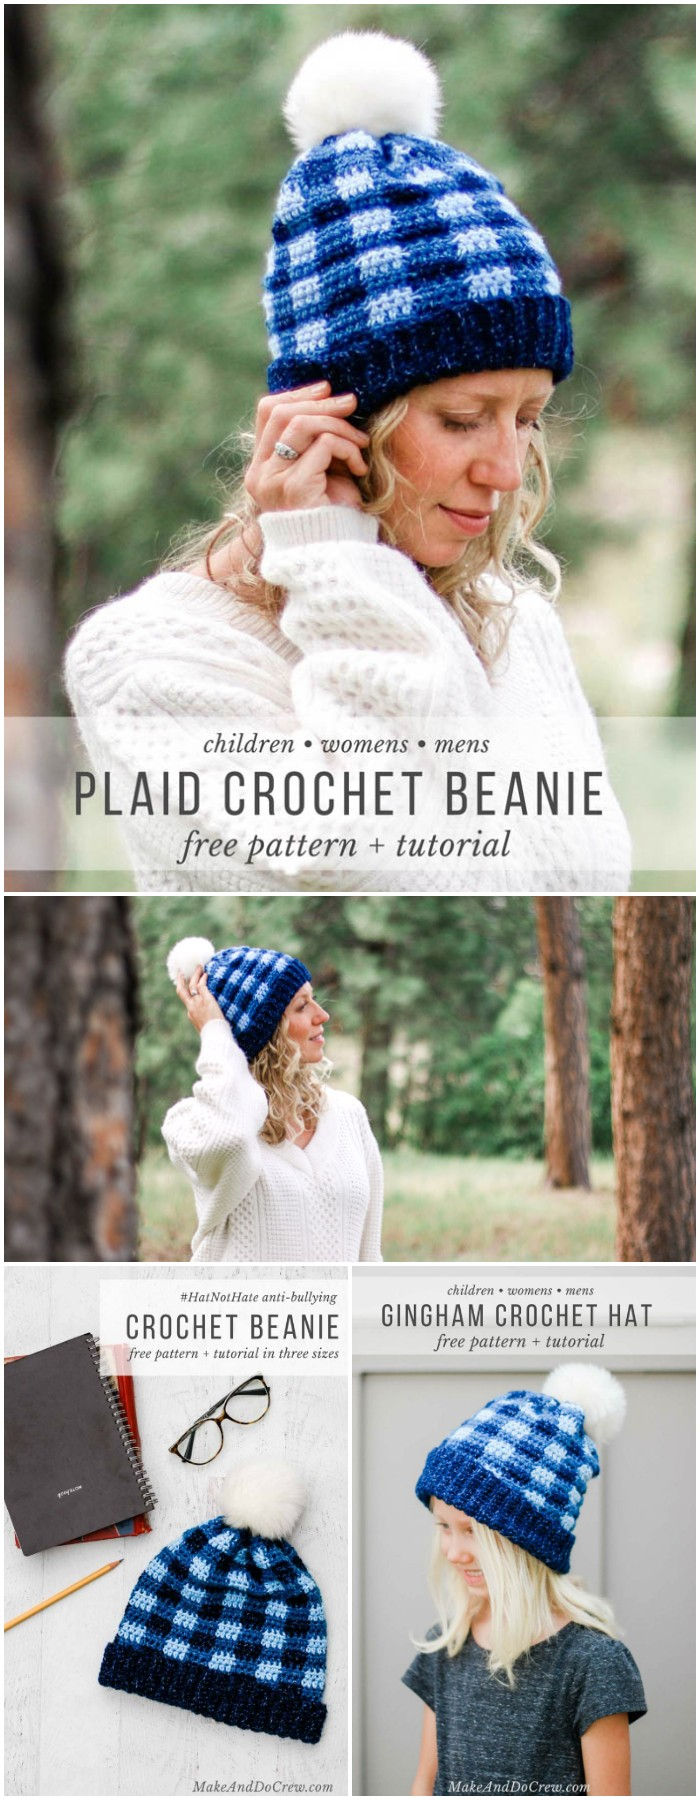 Free Crochet Plaid Hat Pattern For Kids, Women + Men